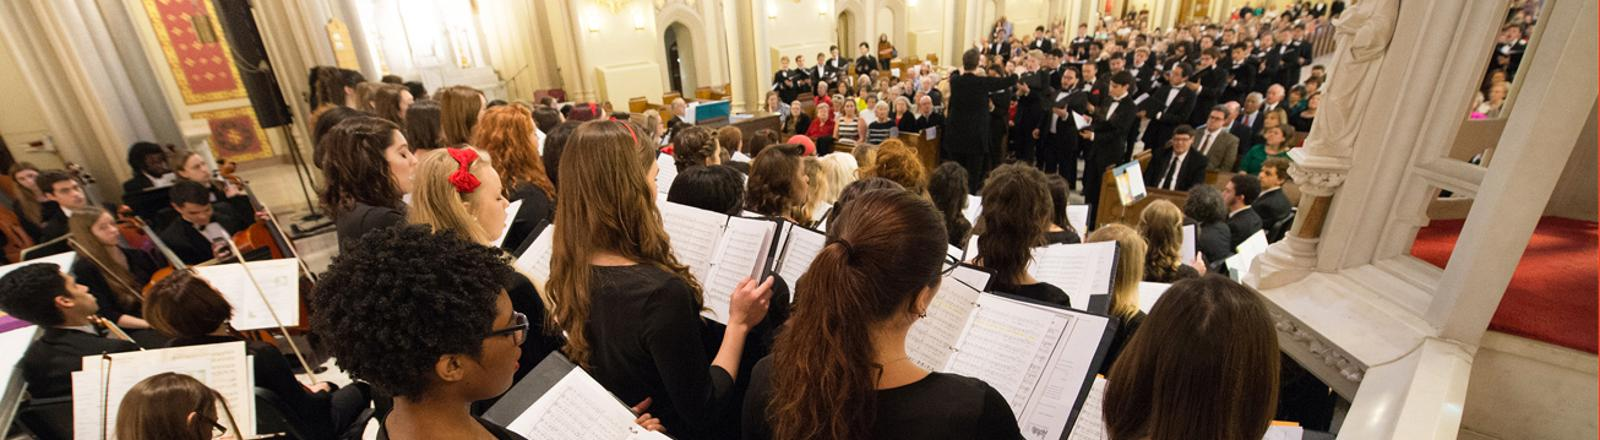 The Loyola Chamber Orchestra and Choirs perform in Holy Name of Jesus Church.